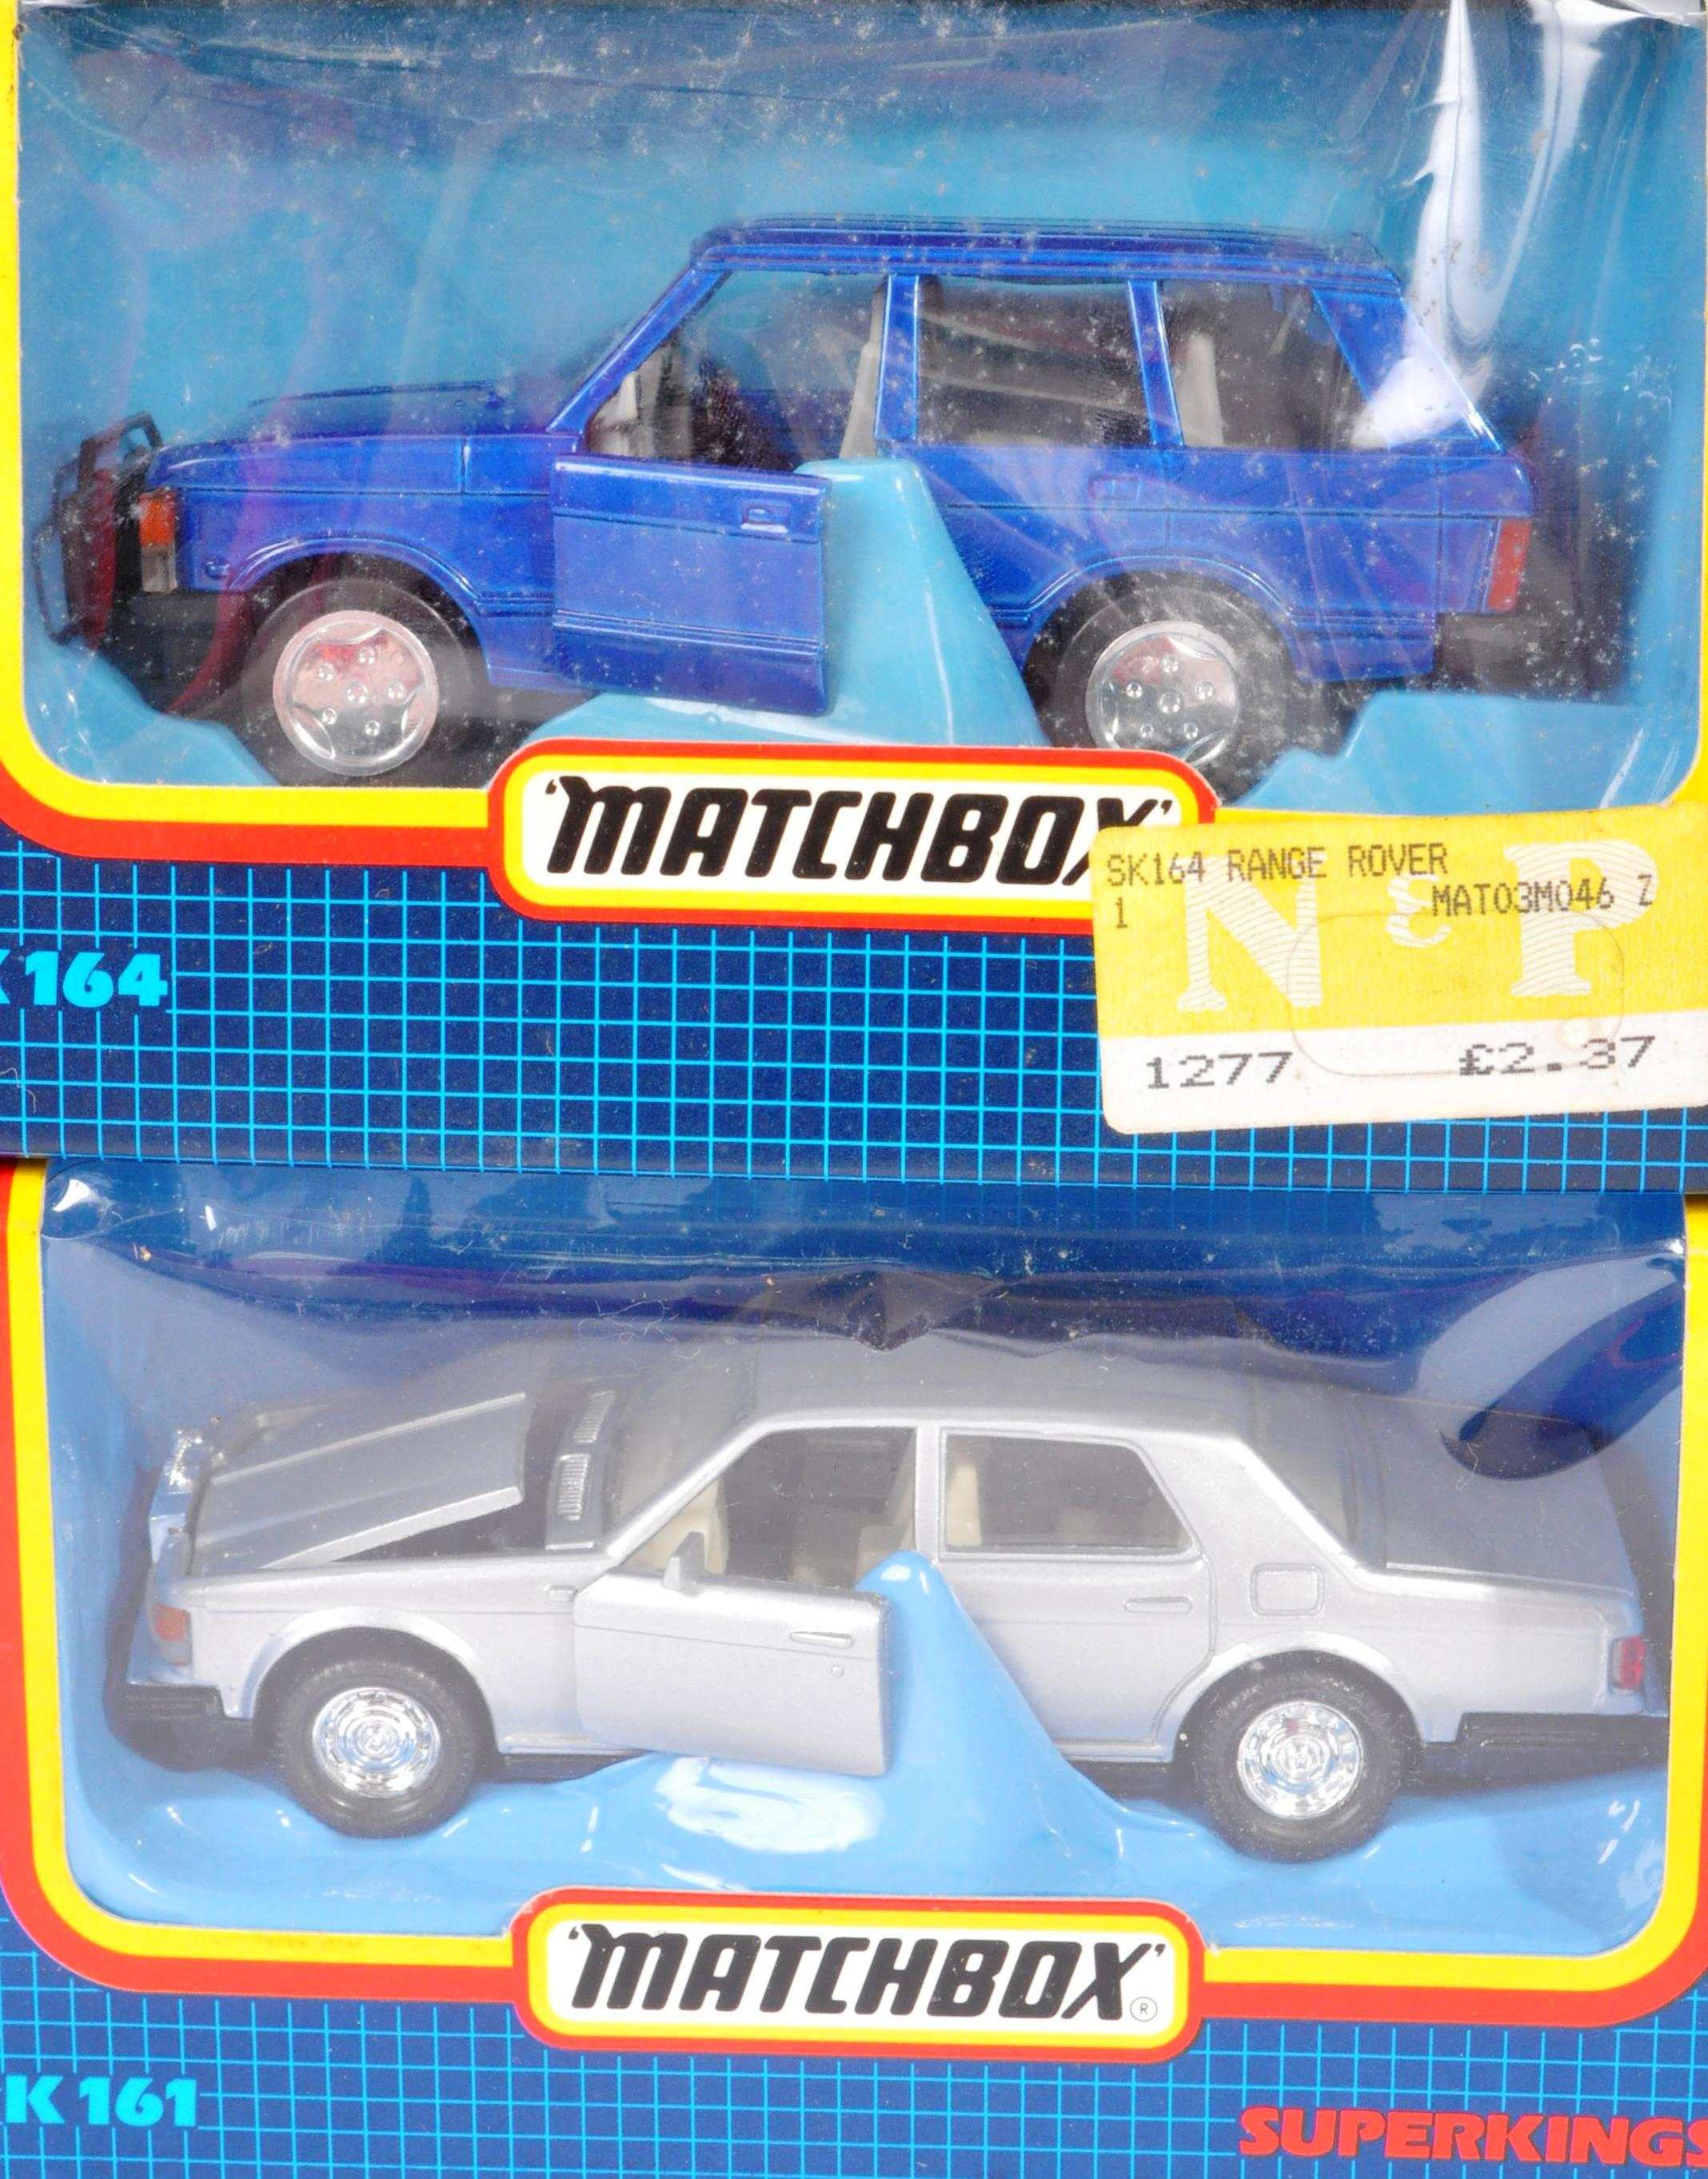 COLLECTION OF VINTAGE MATCHBOX SUPERKINGS DIECAST MODELS - Image 2 of 6